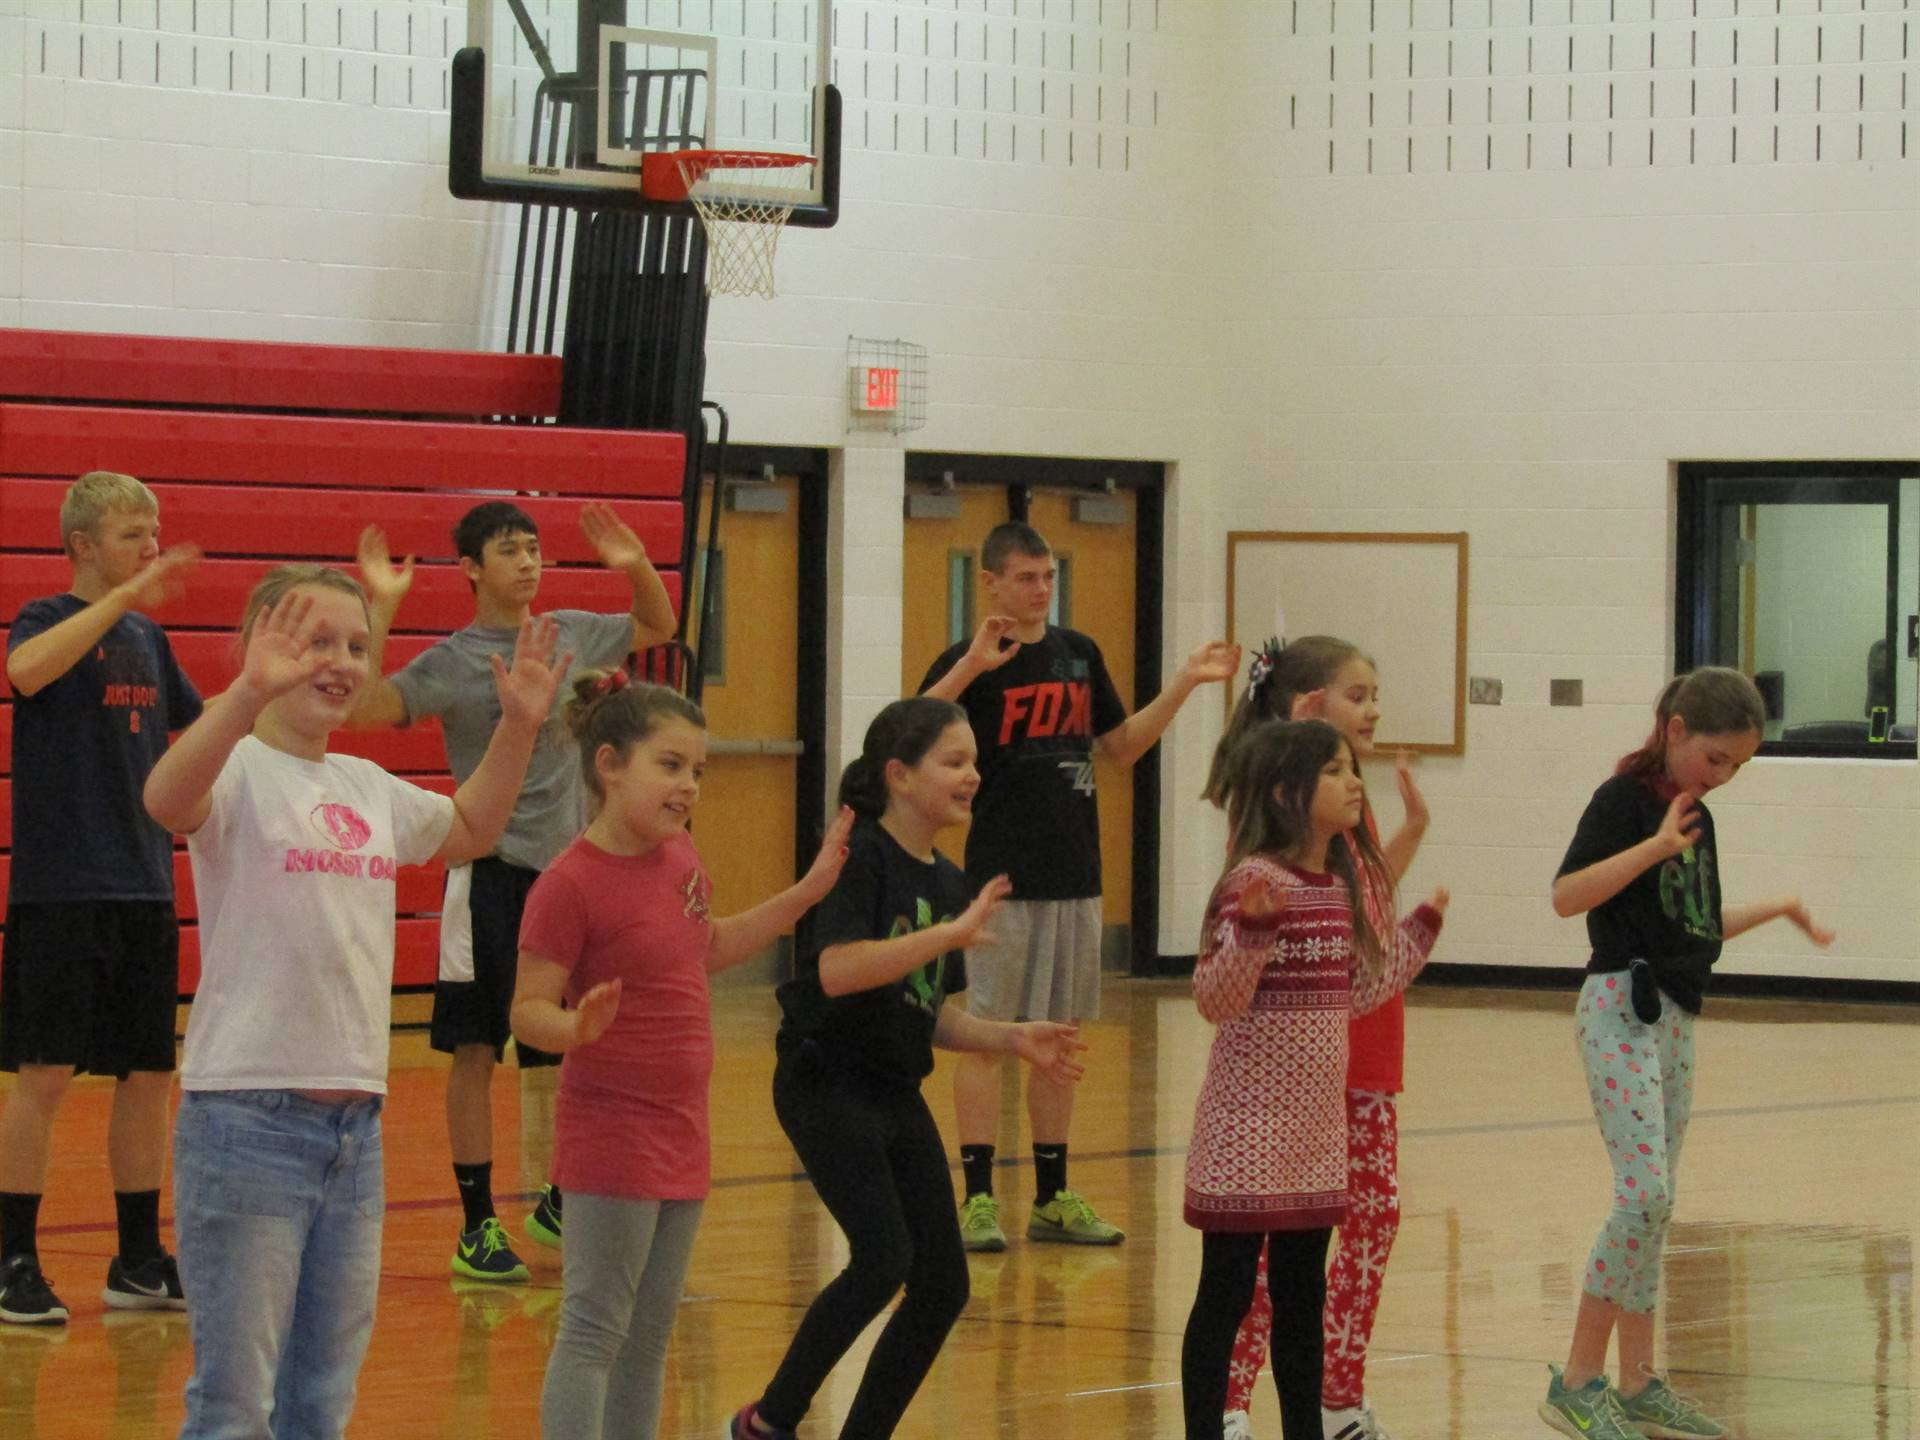 Students following dance instruction during gym class.